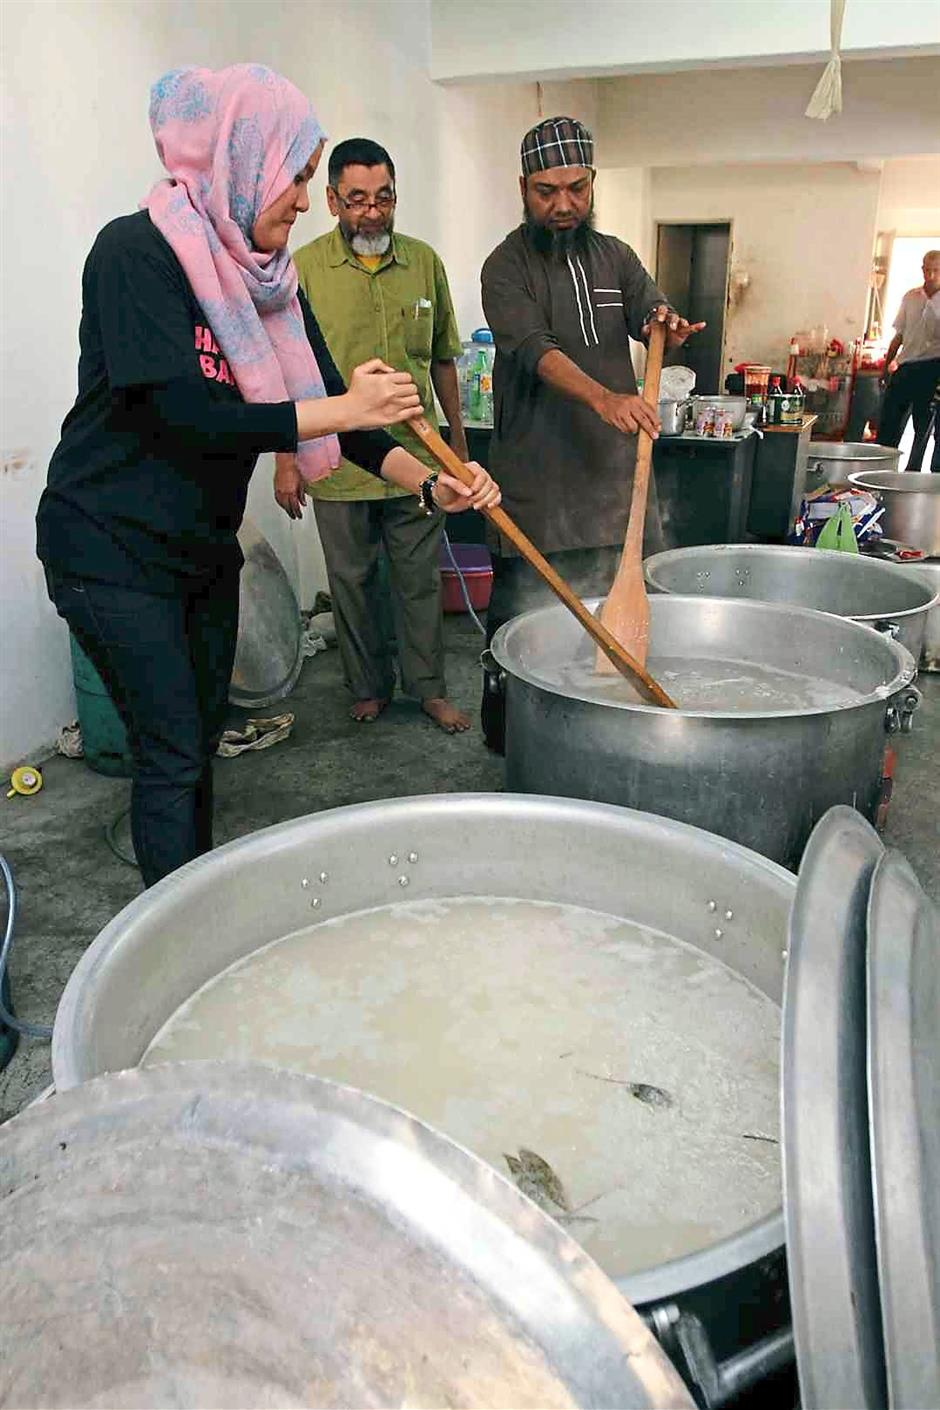 Nurainie (left) and Rafik (right) helping with the cooking at the Raya Rohingya programme while a volunteer looks on.